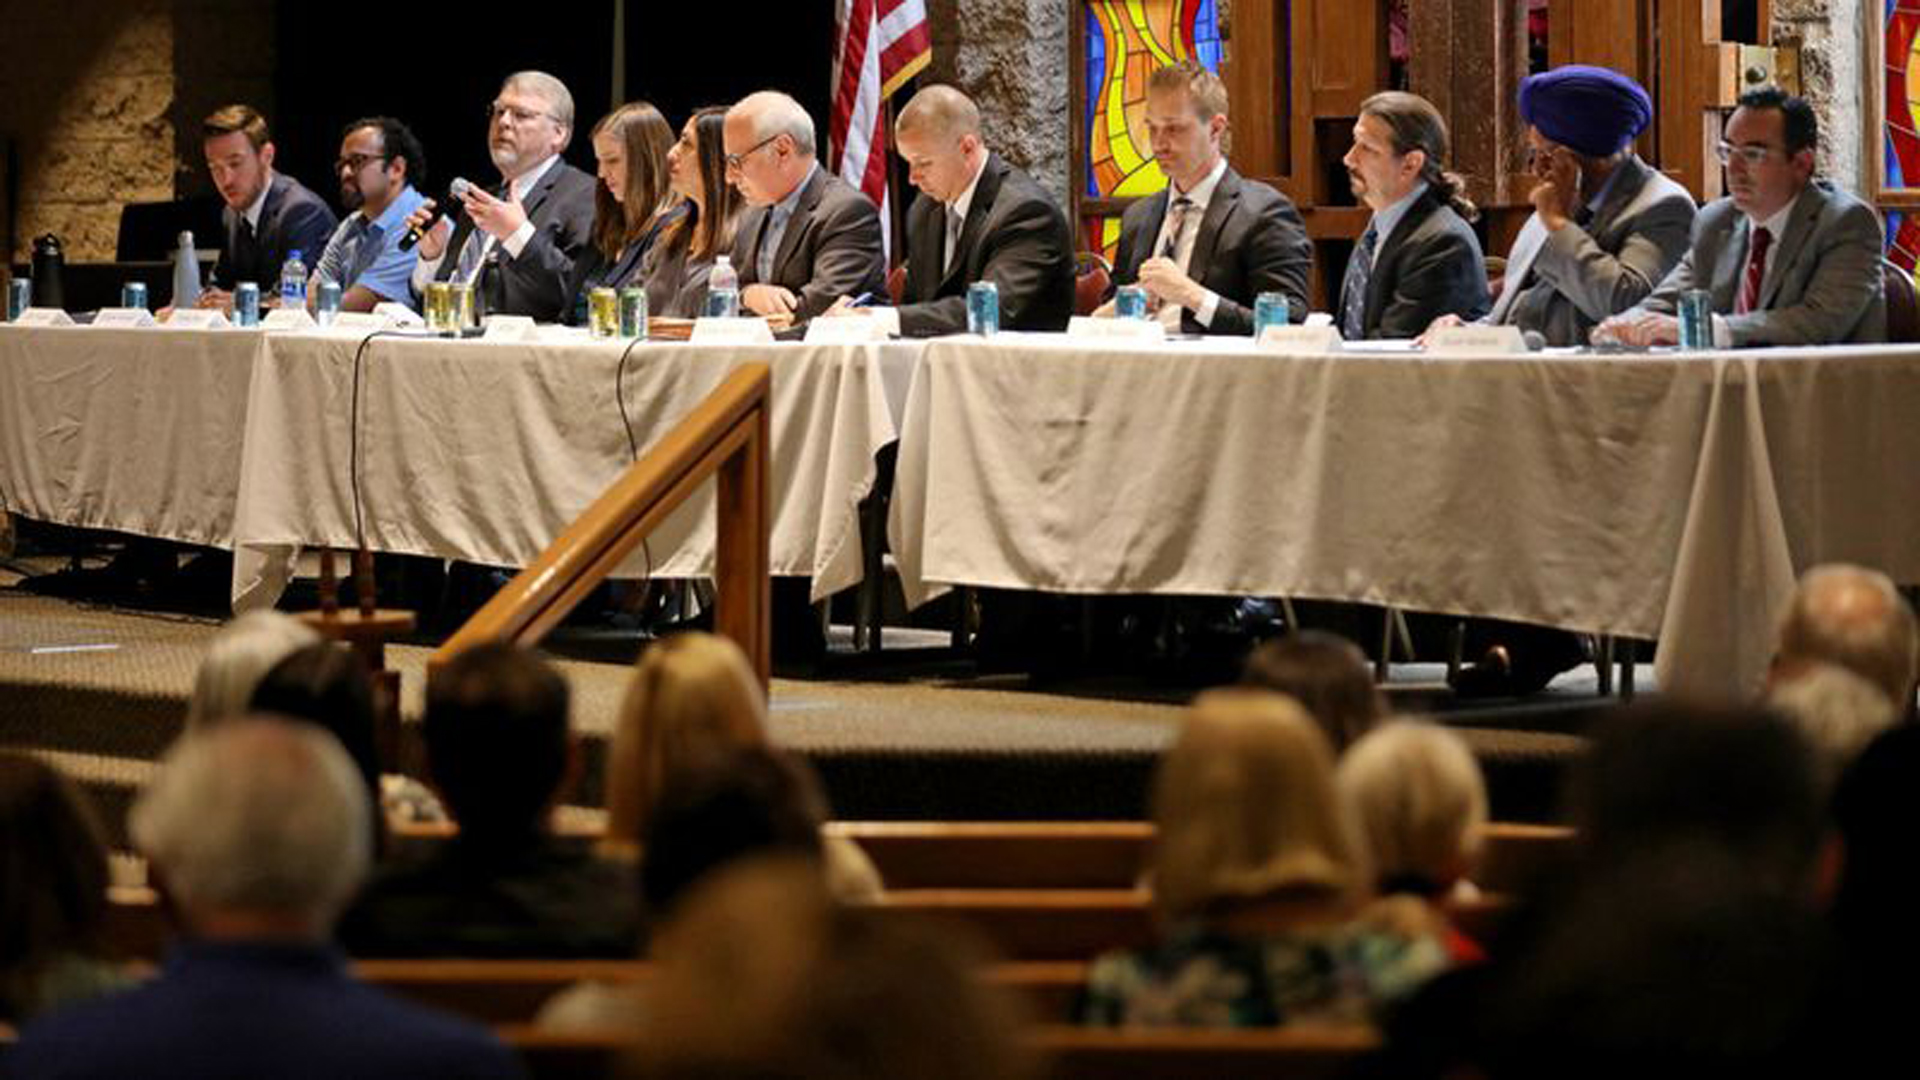 L.A. City Council District 12 candidates at a forum in April. (Credit: Gary Coronado / Los Angeles Times)